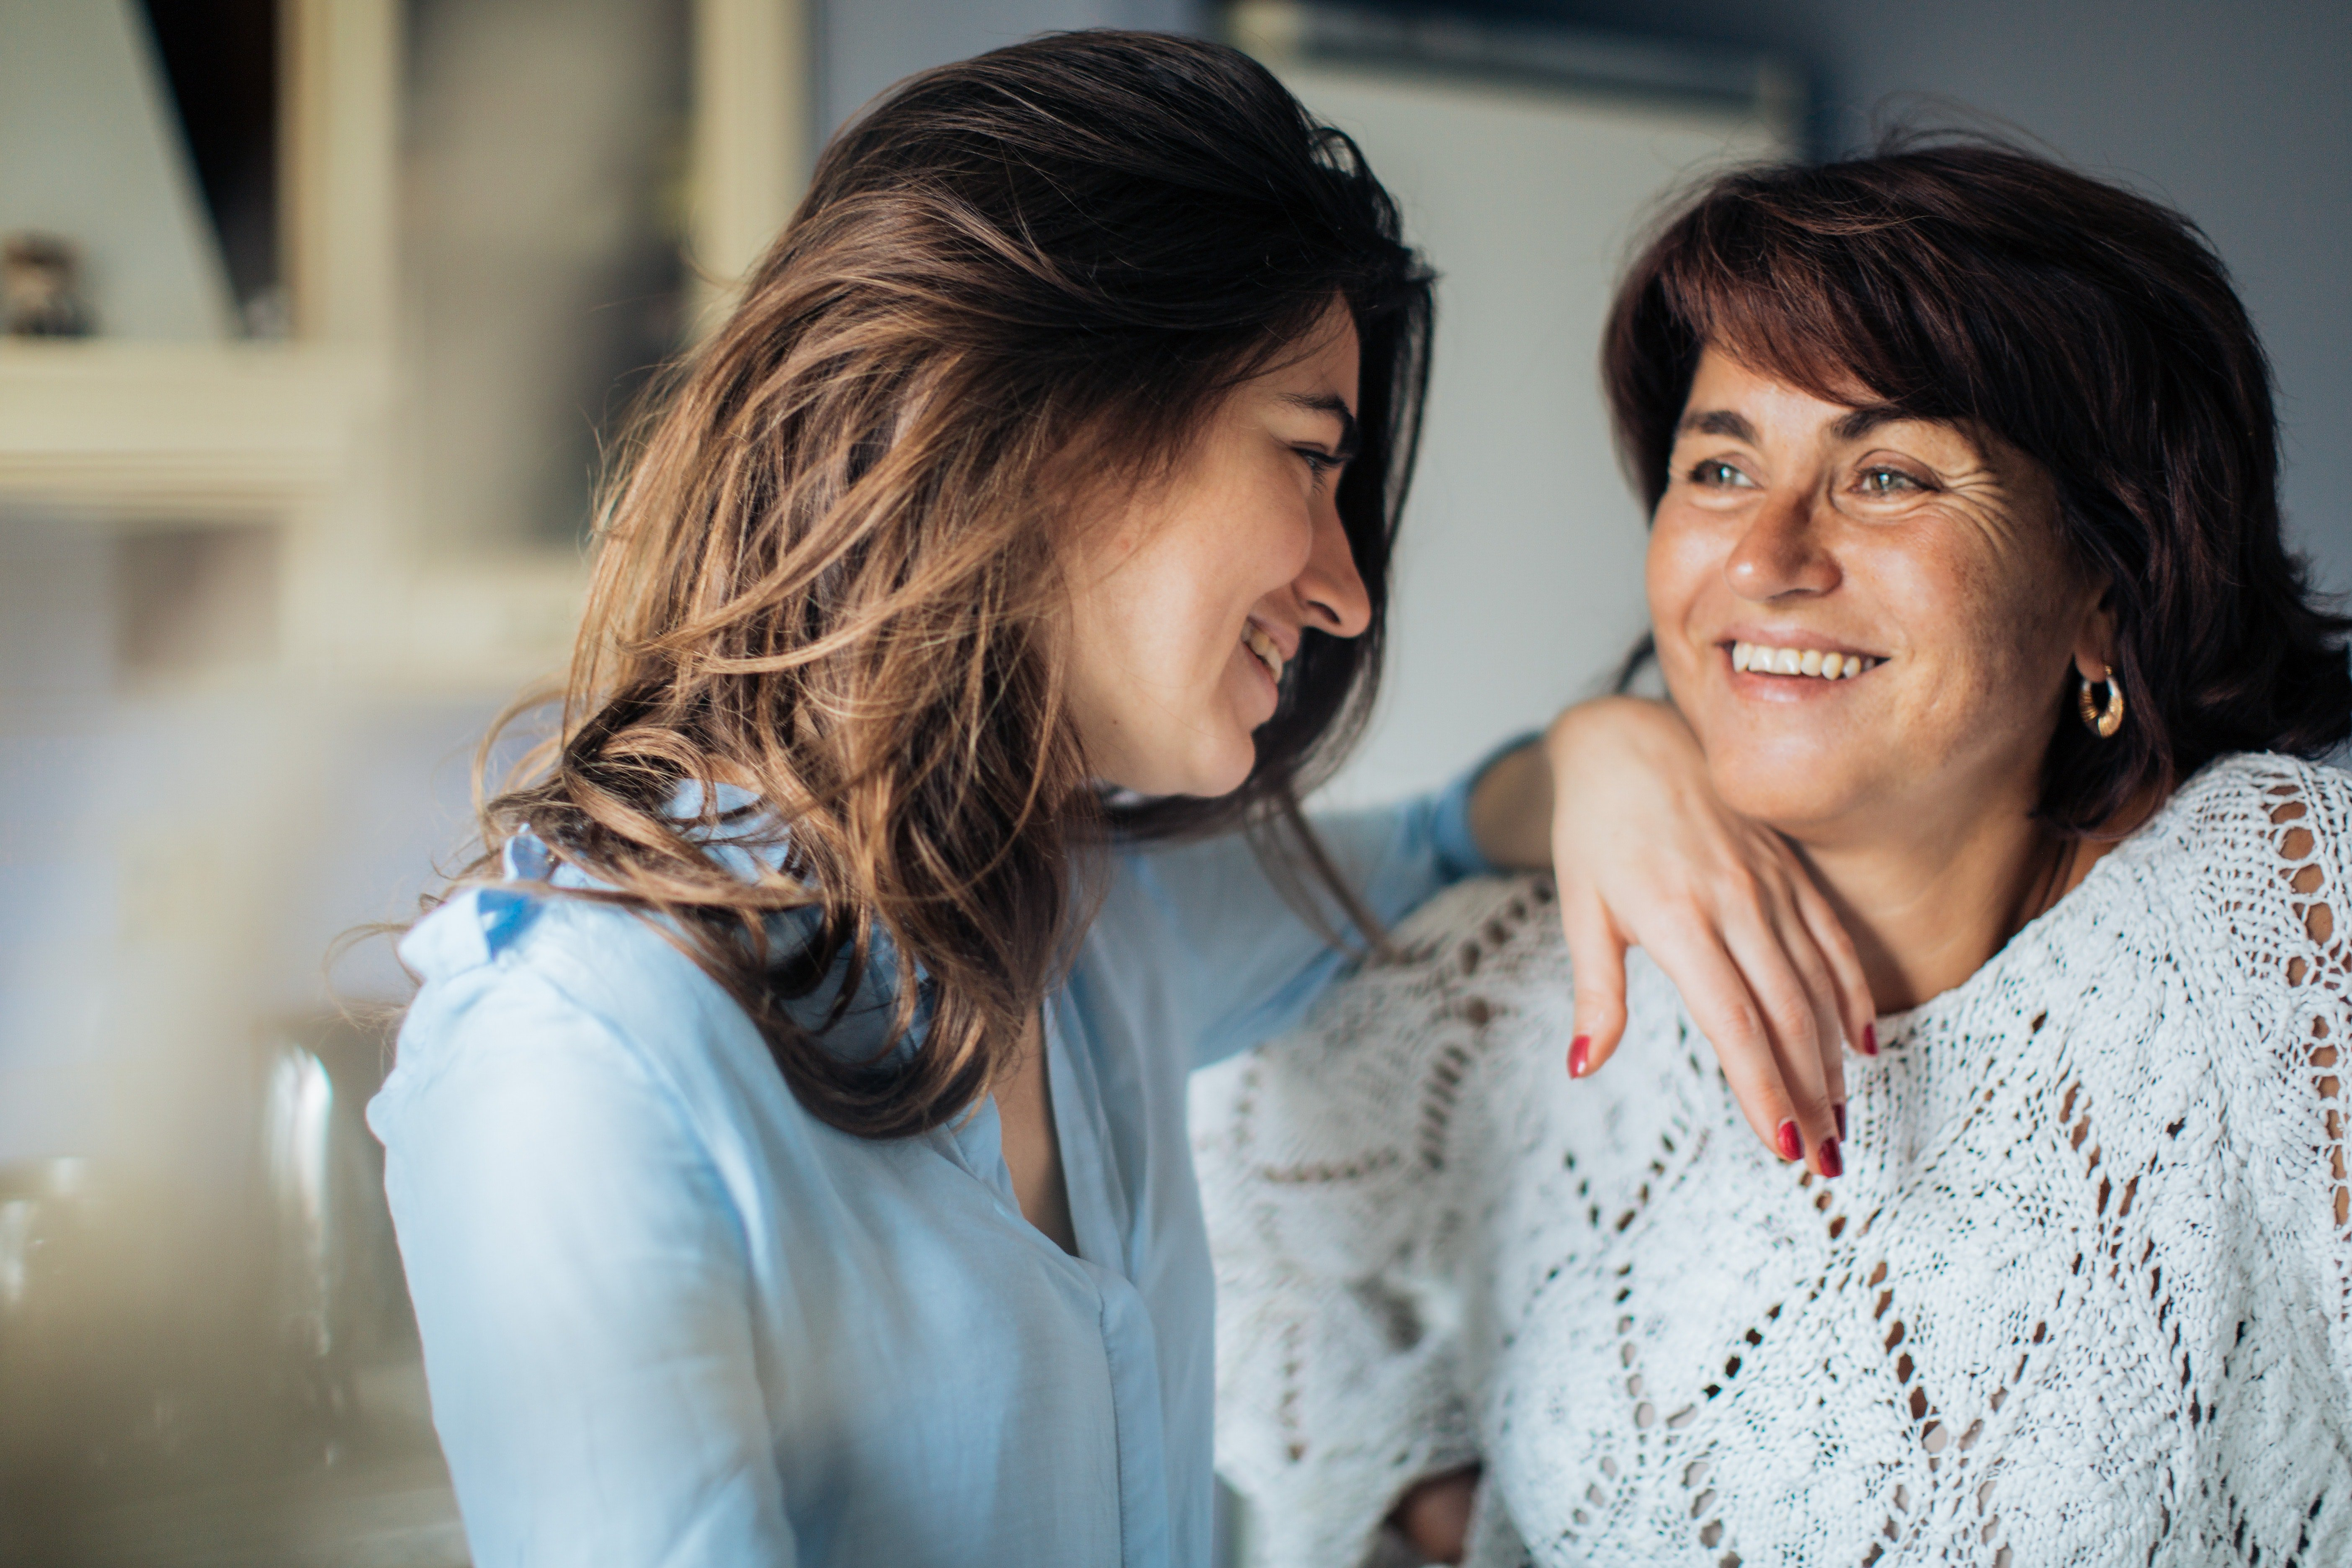 Olivia reunited with her mother | Photo: Pexels